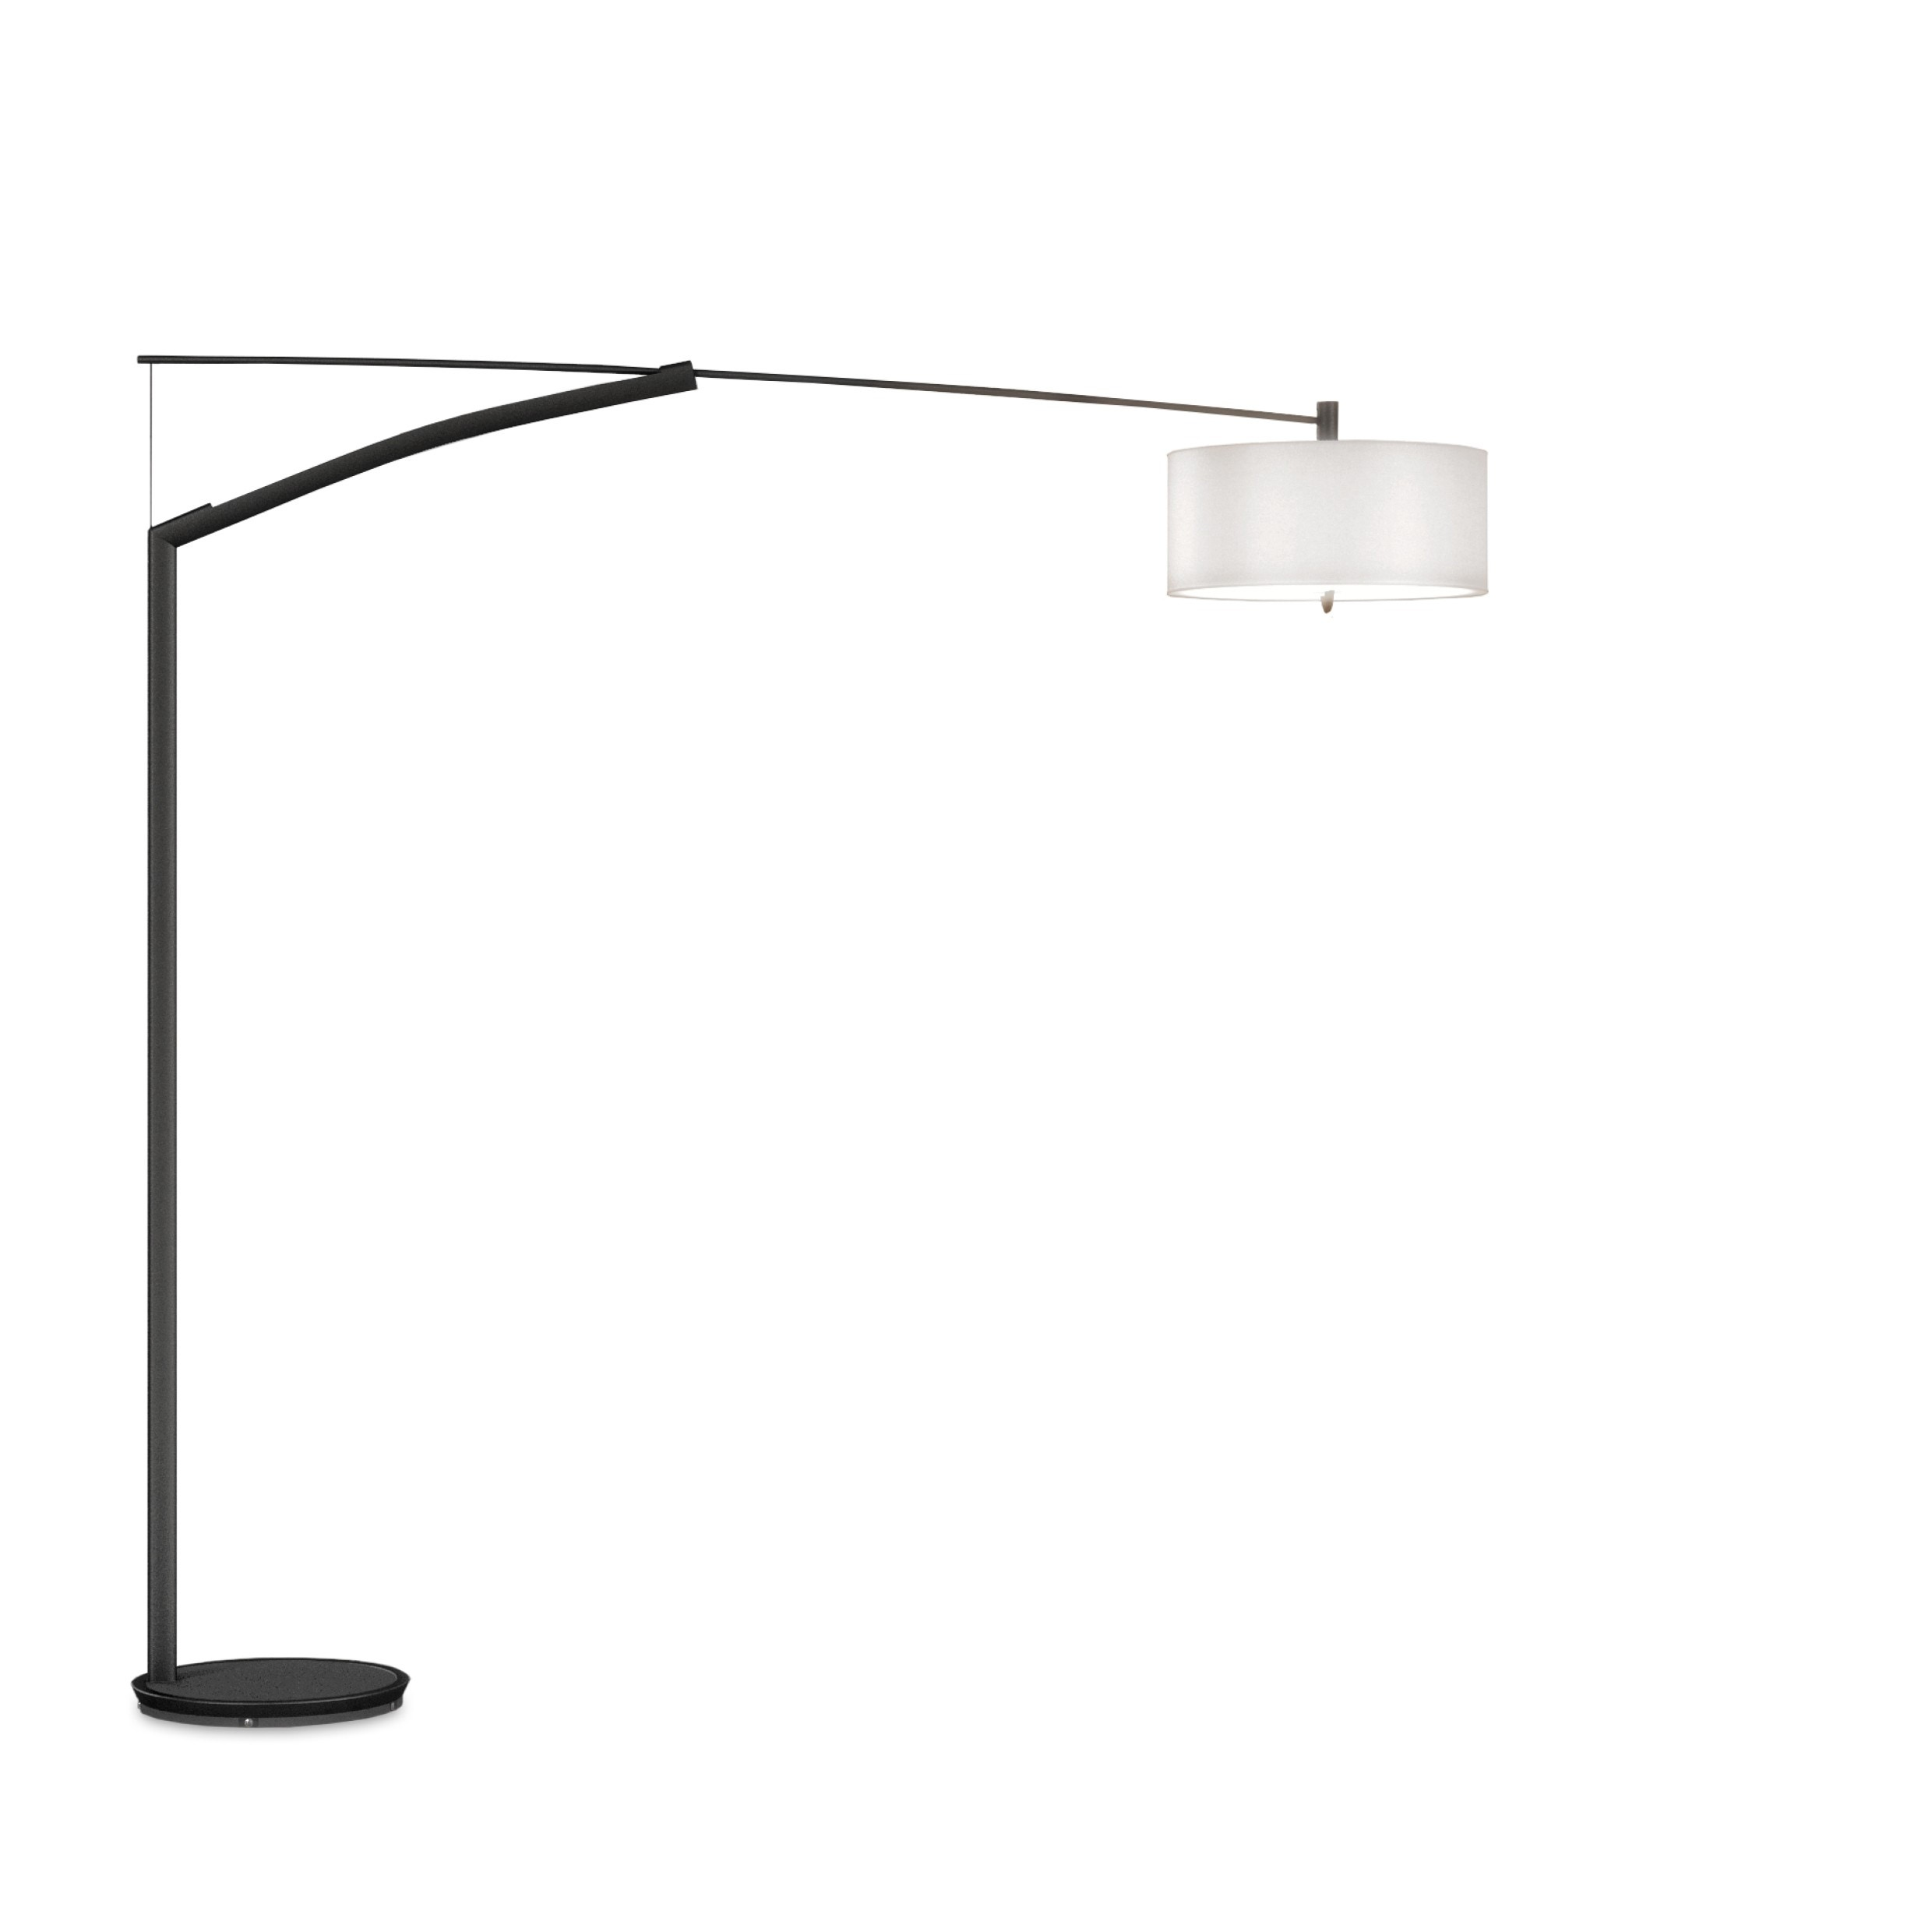 Vibia Balance Floor Lamp Vibia Shop By Brand Modern